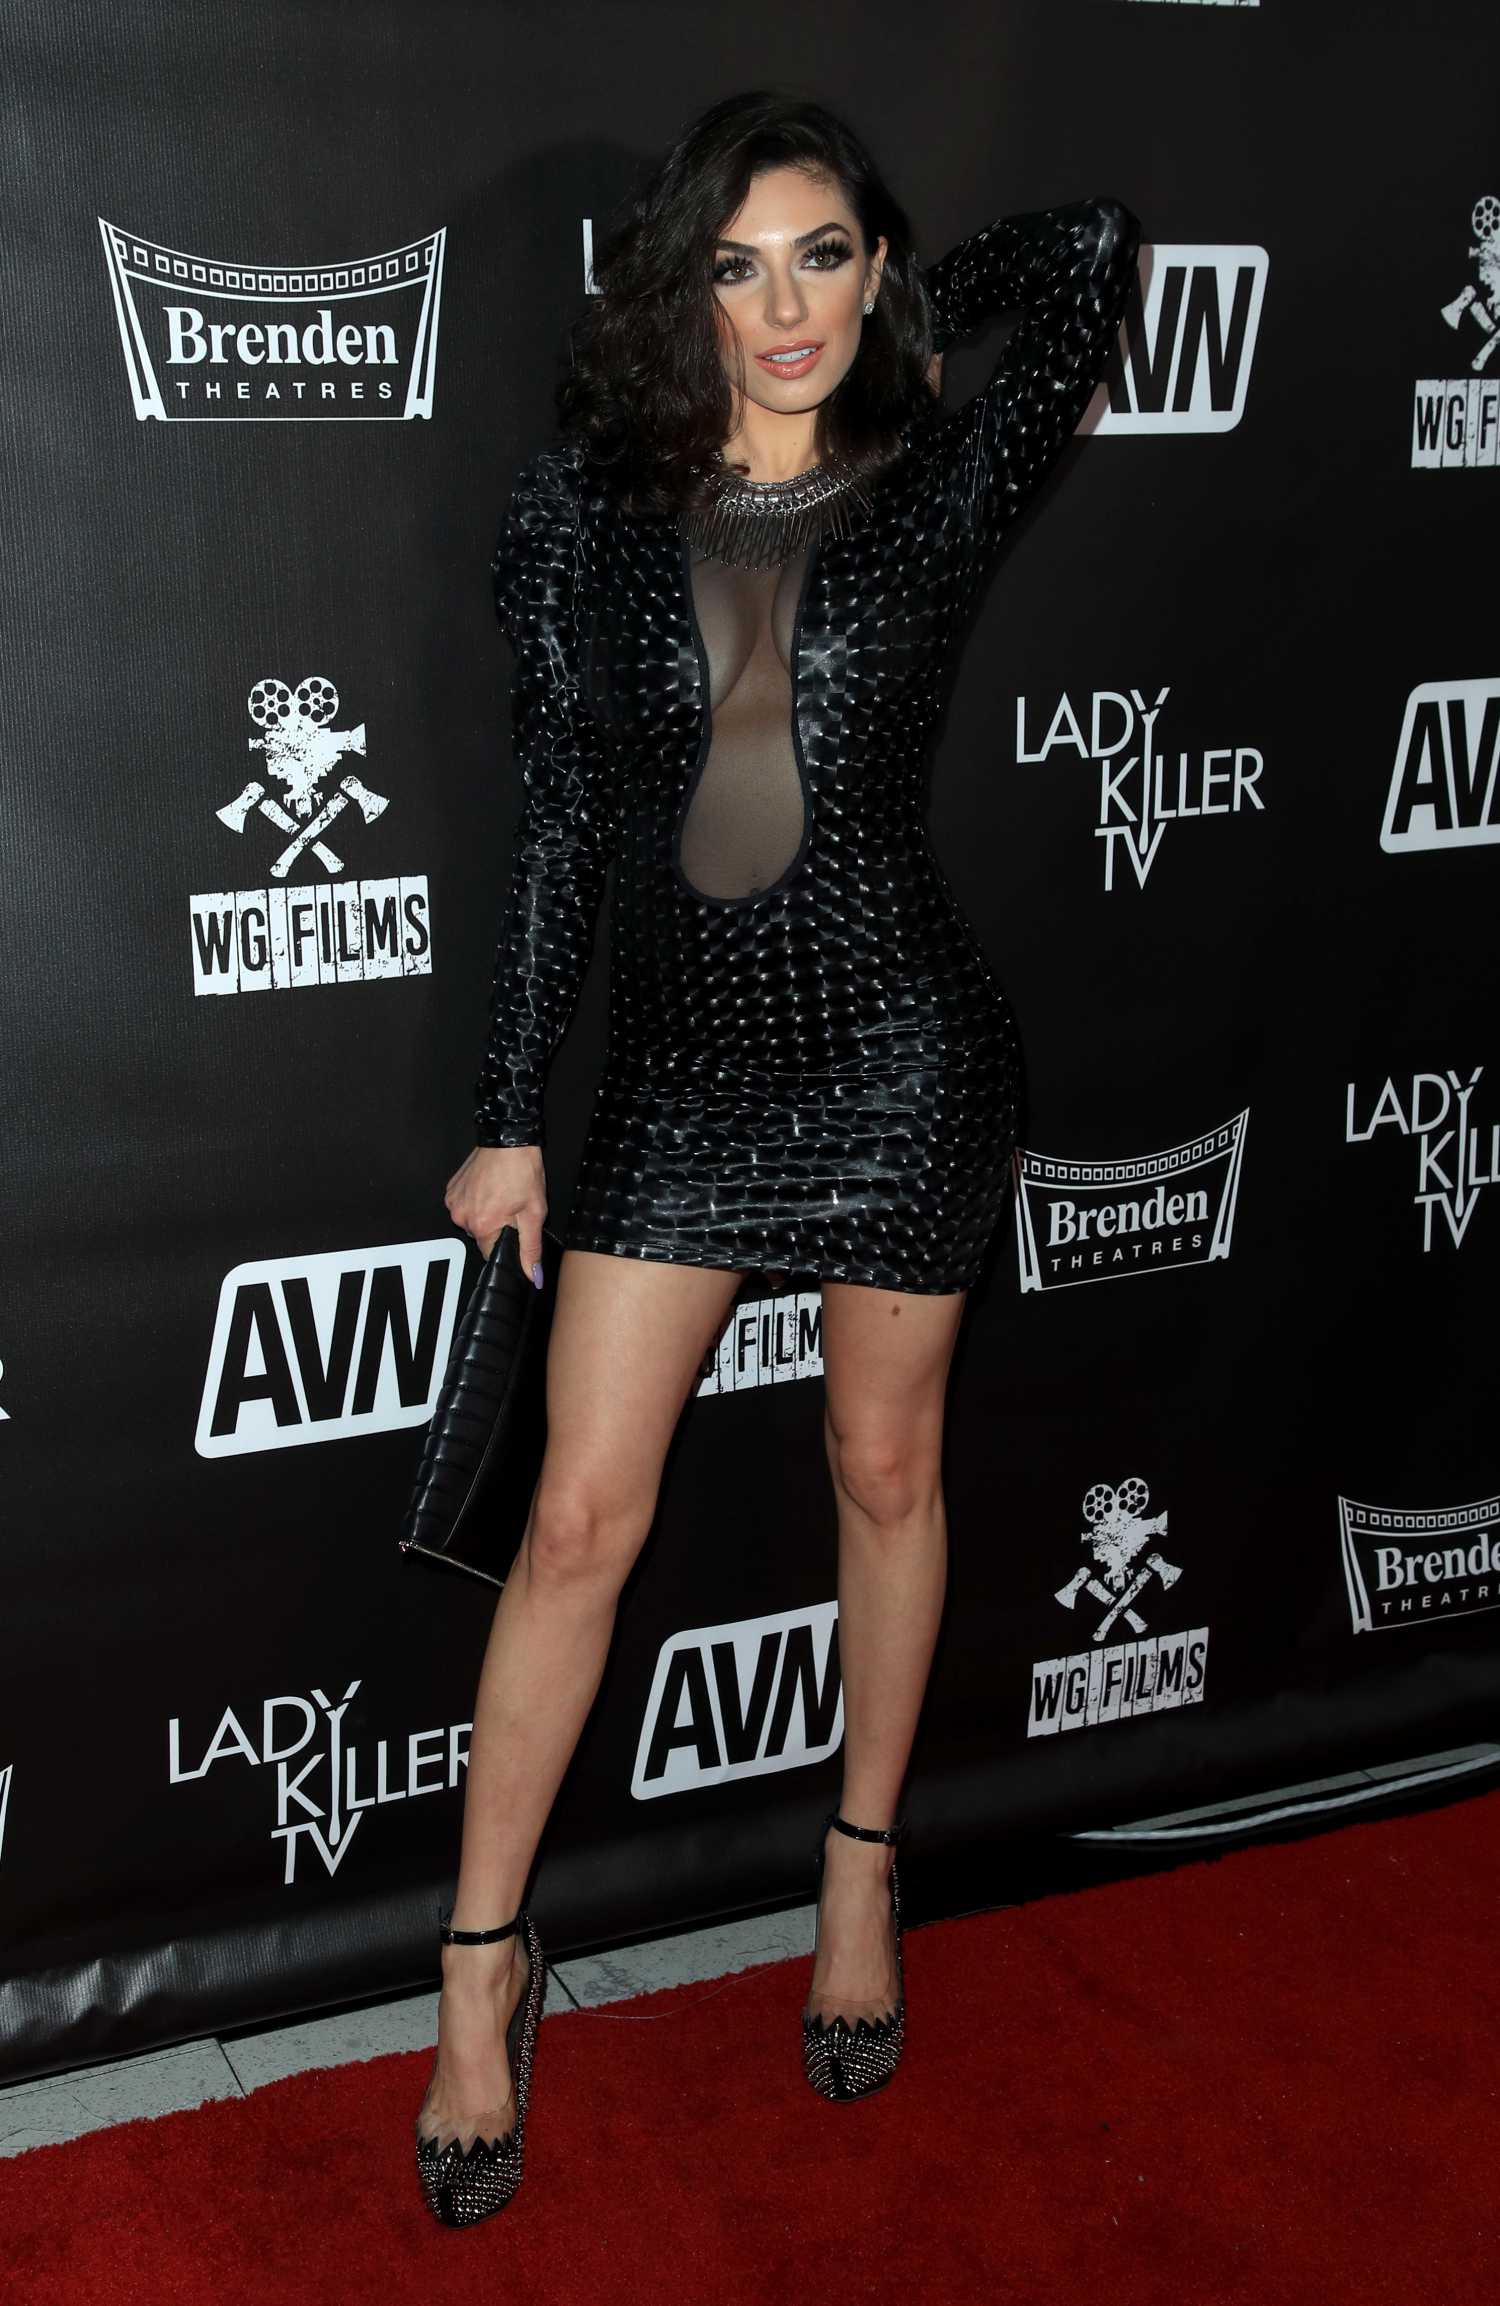 Darcie Dolce Attends the Lady Killer TV Premiere at